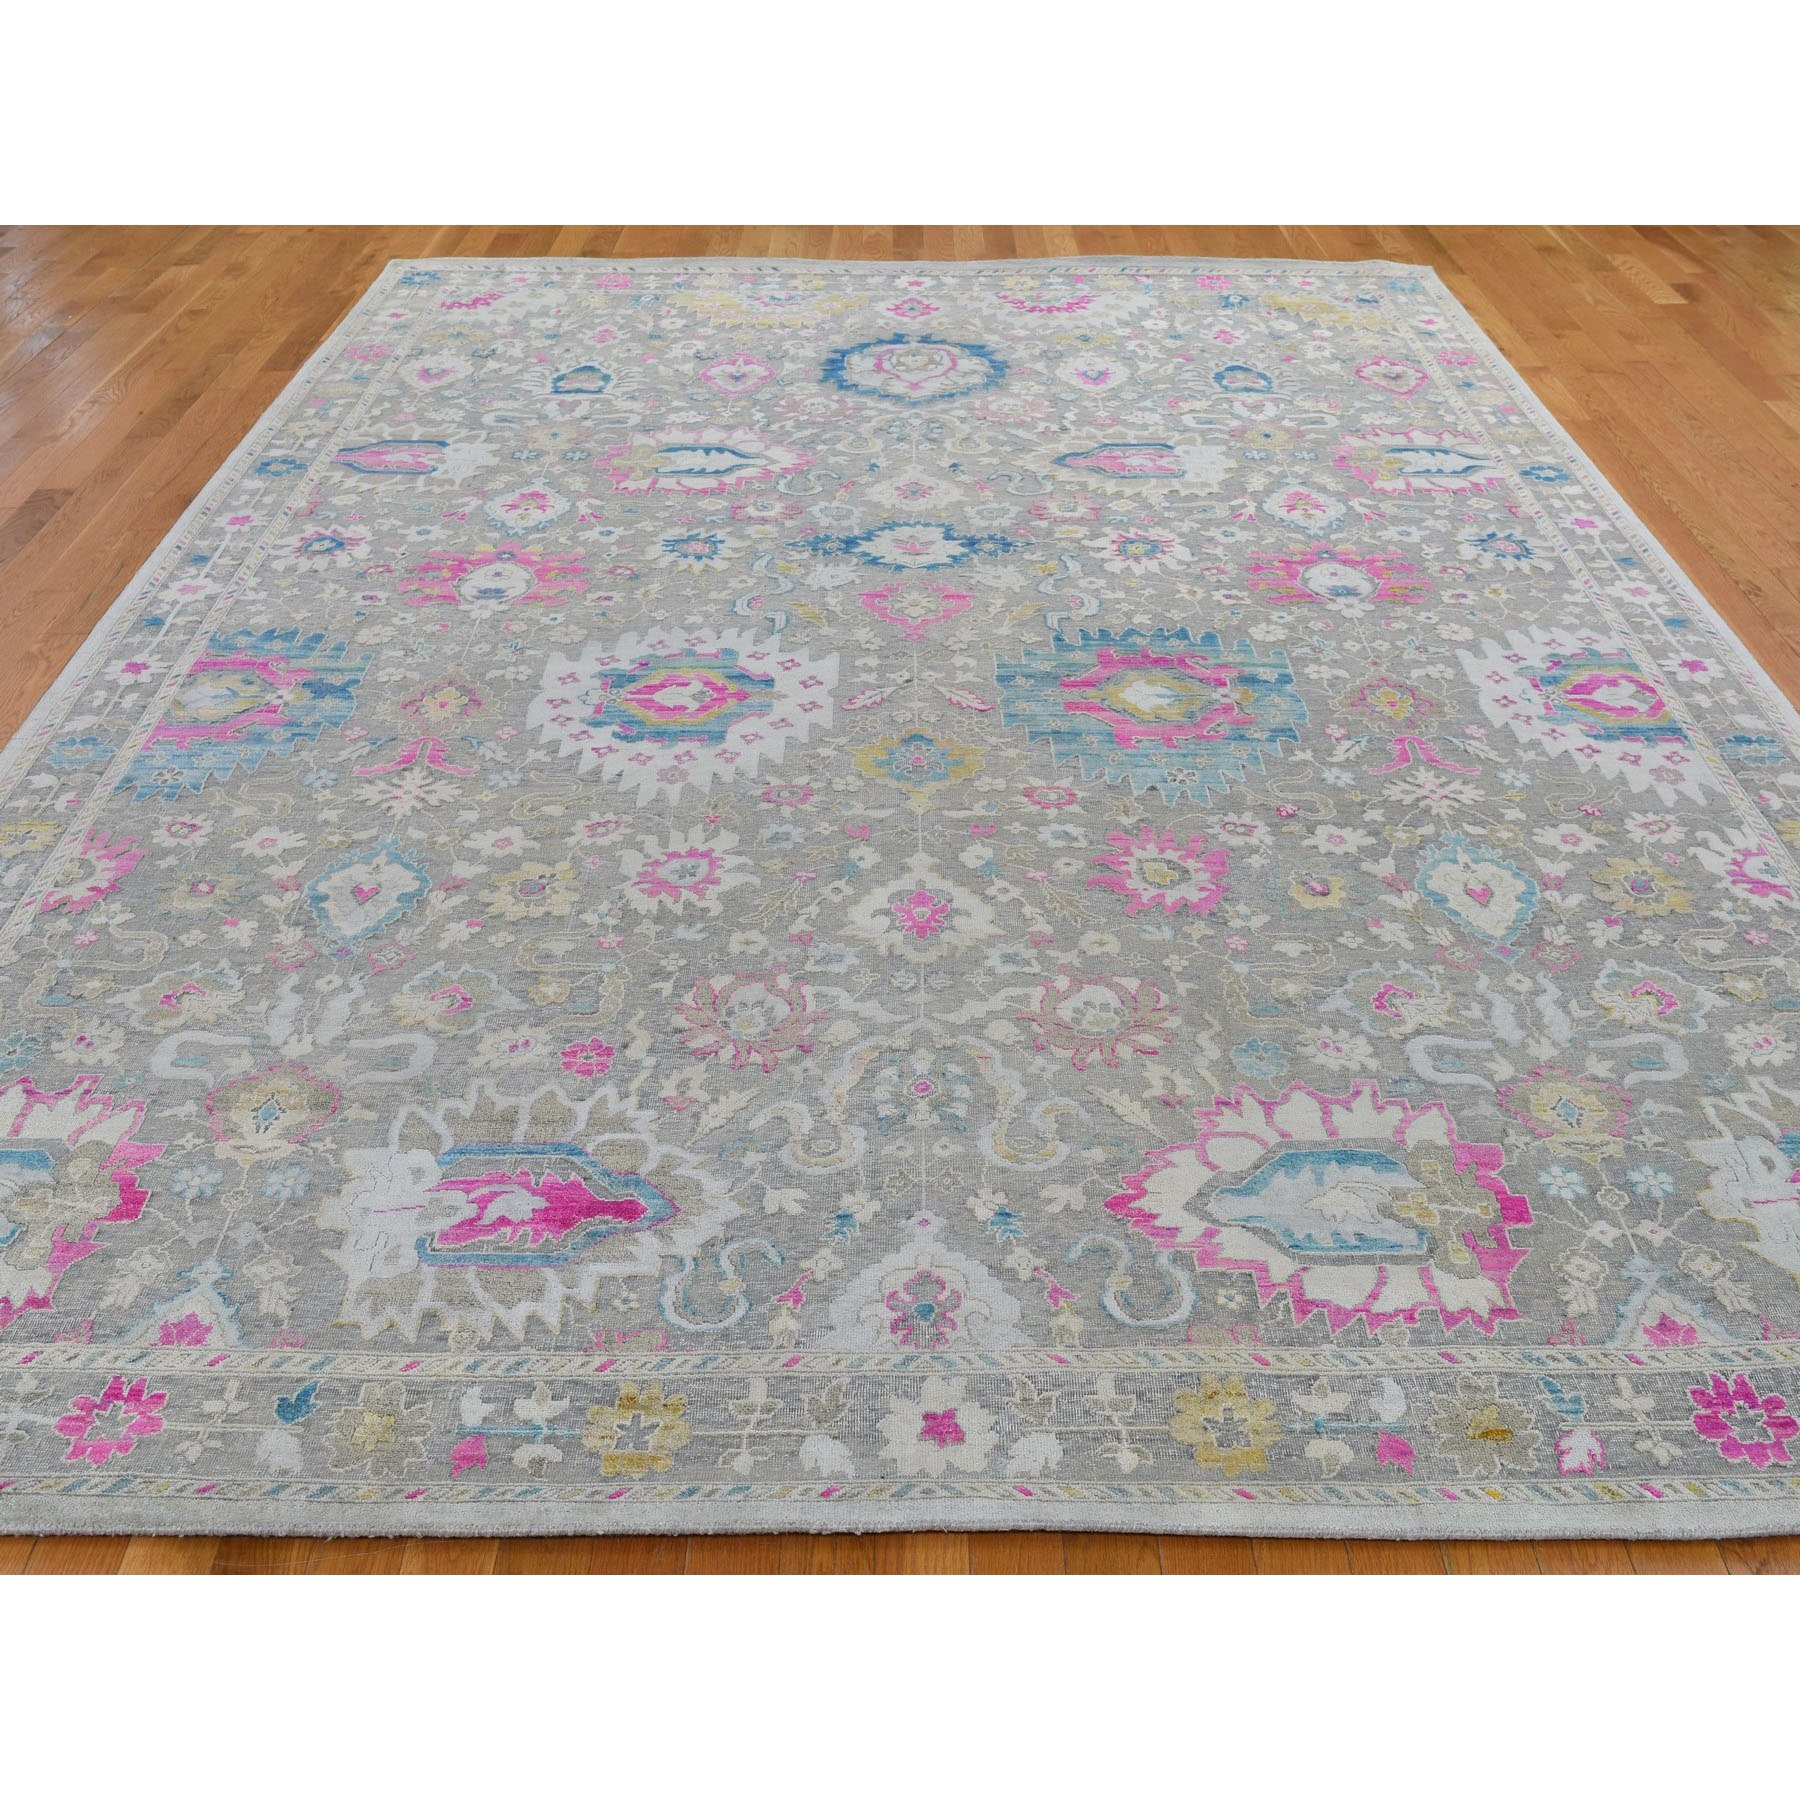 9-x12-1  Colorful Sari Silk With Textured Wool Hand Knotted Oushak Influence Rug